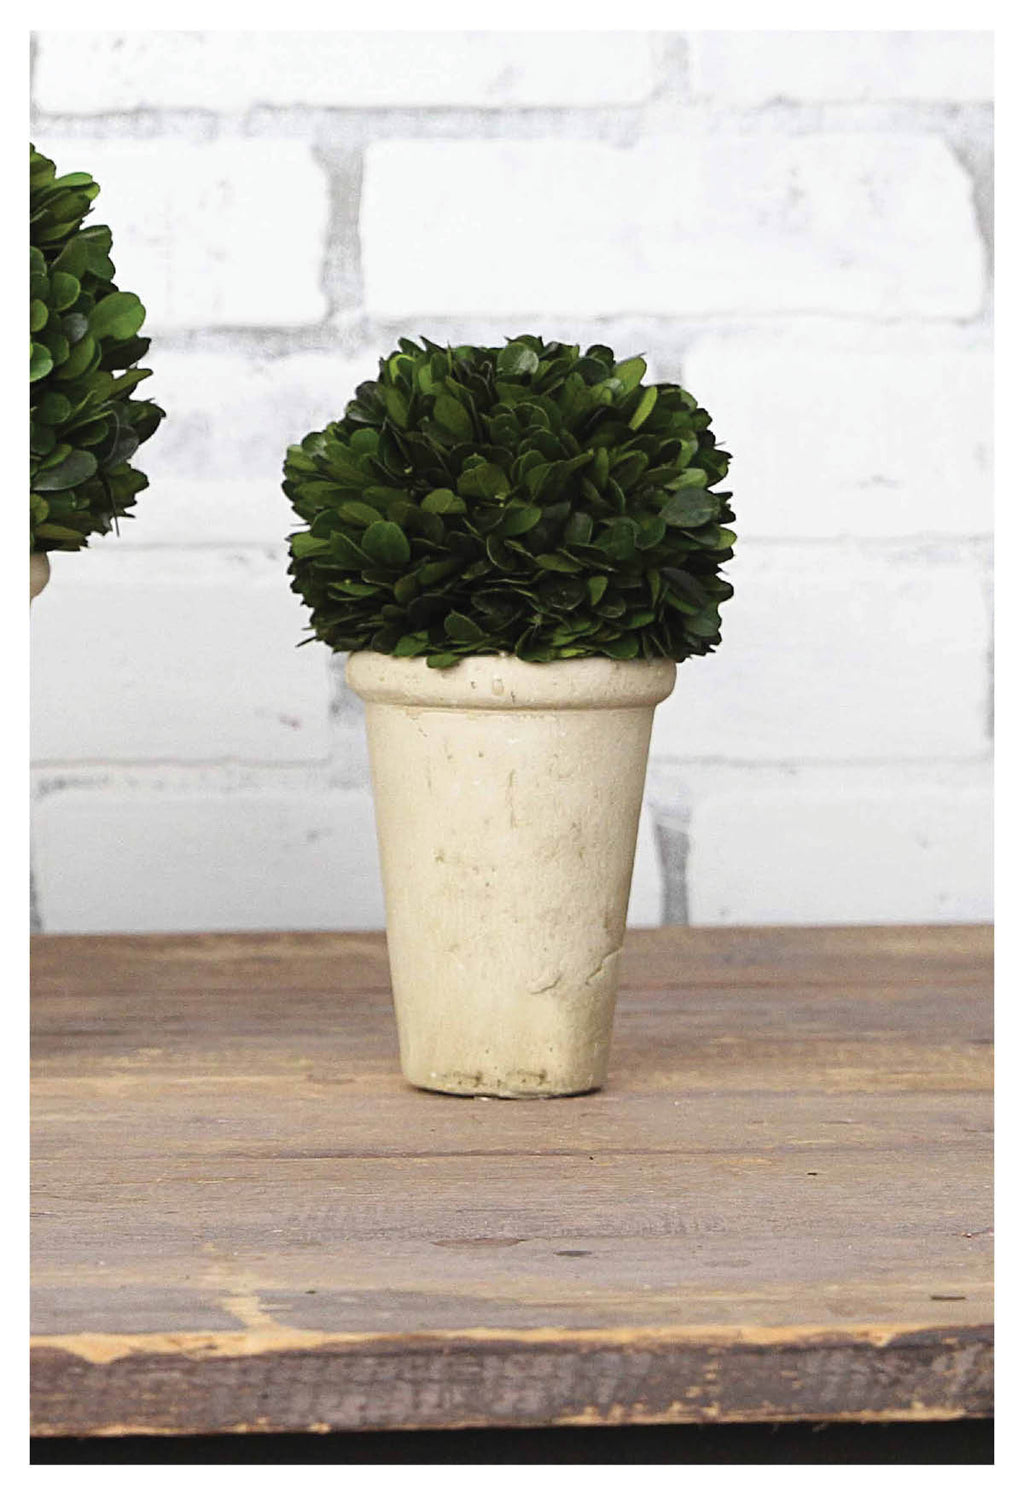 Handsome Potted Half-Ball Boxwood Topiary!